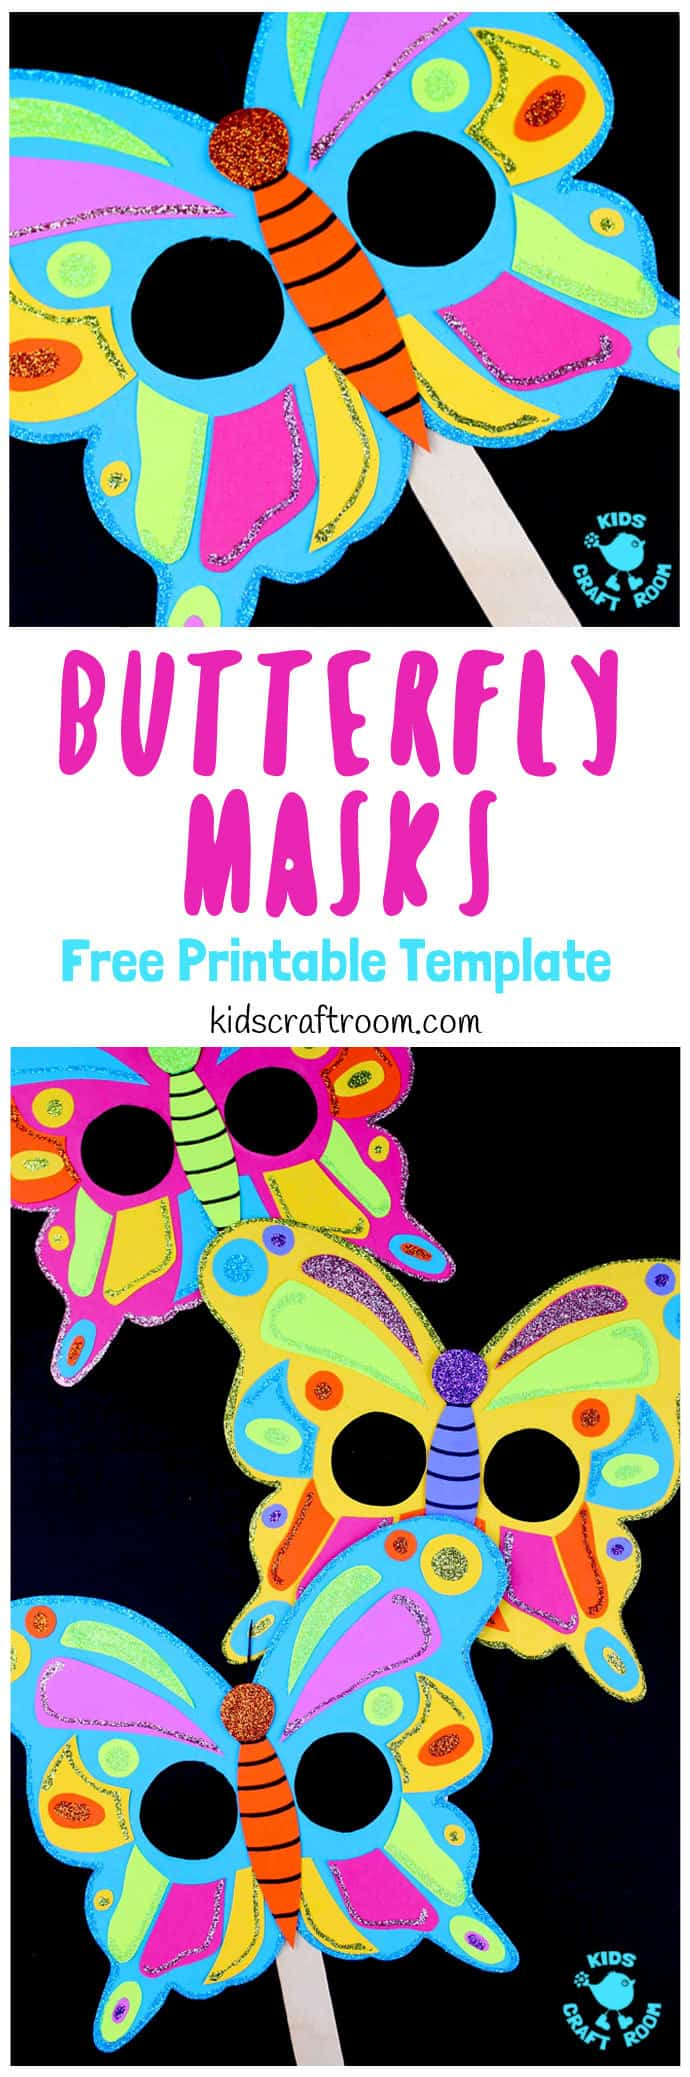 Are your kids fascinated by the butterfly lifecycle? These Colourful Butterfly Masks are a fantastic way to celebrate the wonder of butterflies and engage children in learning all about them. They're easy to make with our free printable template and a fun way to introduce children to symmetry and pattern making too. #butterflies #butterflycrafts #masks #kidscrafts #papercrafts #printables #craftsforkids #kidscraftroom #summercrafts #springcrafts #insectcrafts #kidsactivities #butterfly